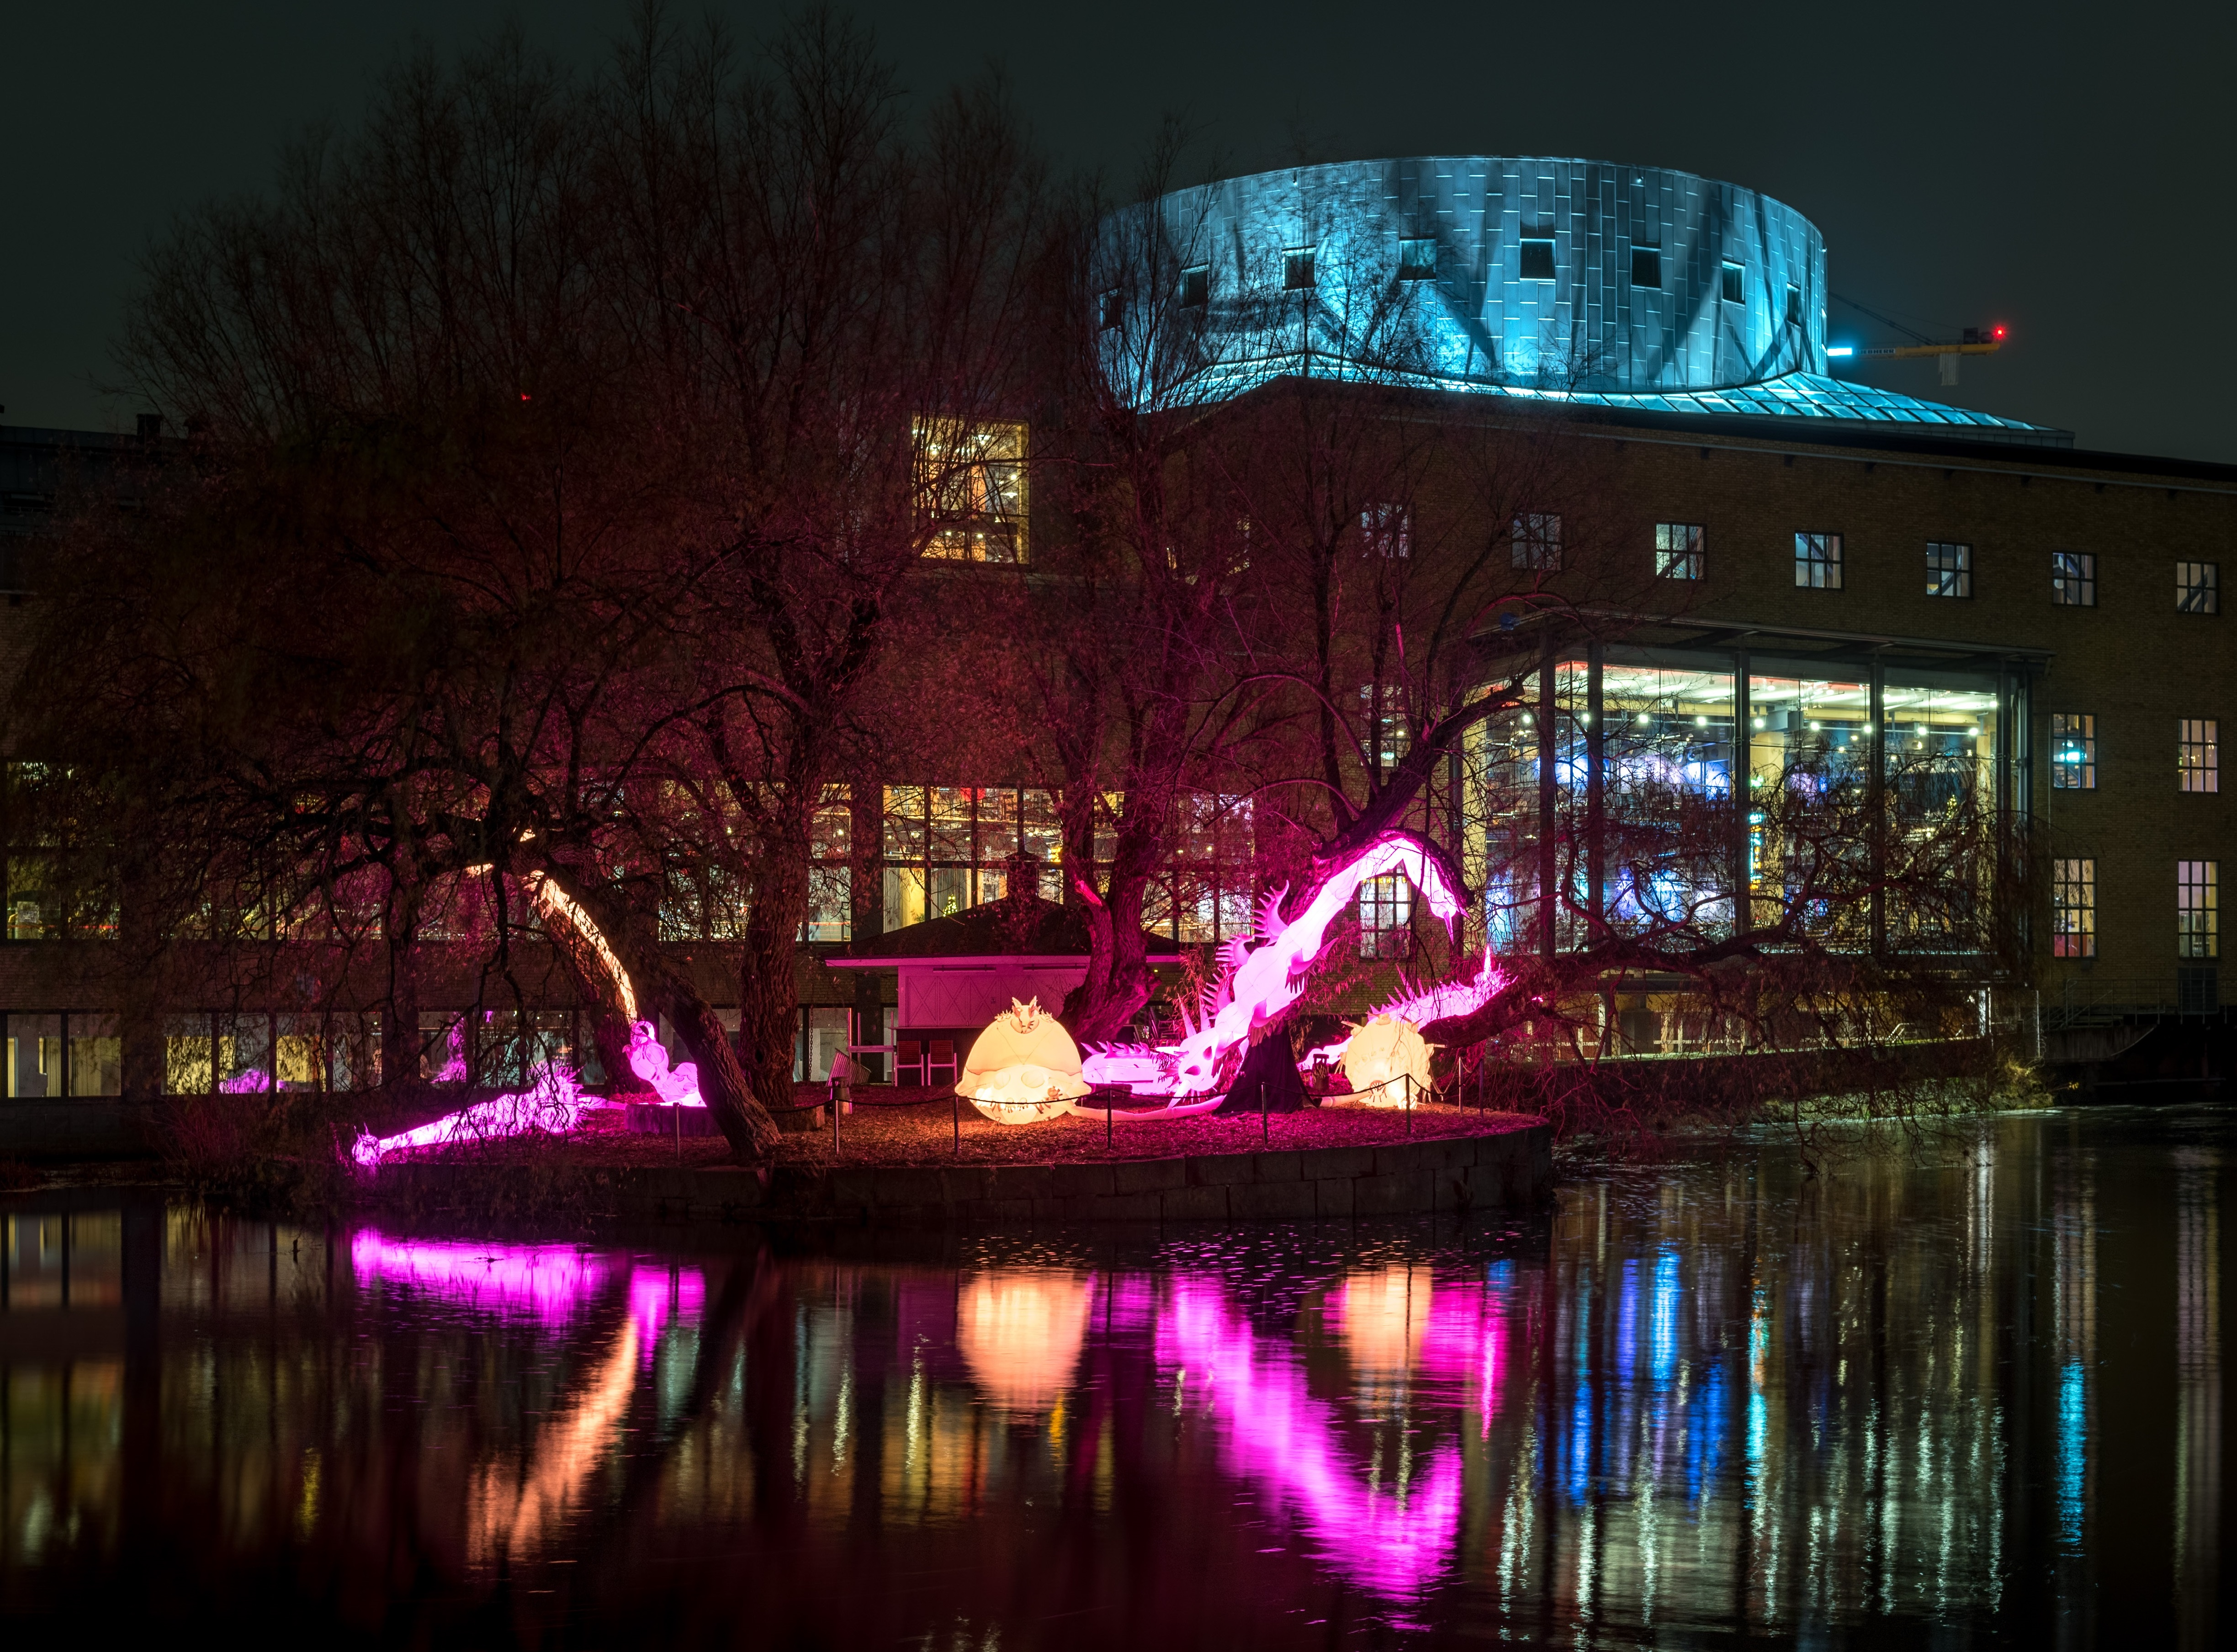 Rotifers, a typical light artwork by Nicole Anona Banowetz at Amsterdam Light festival